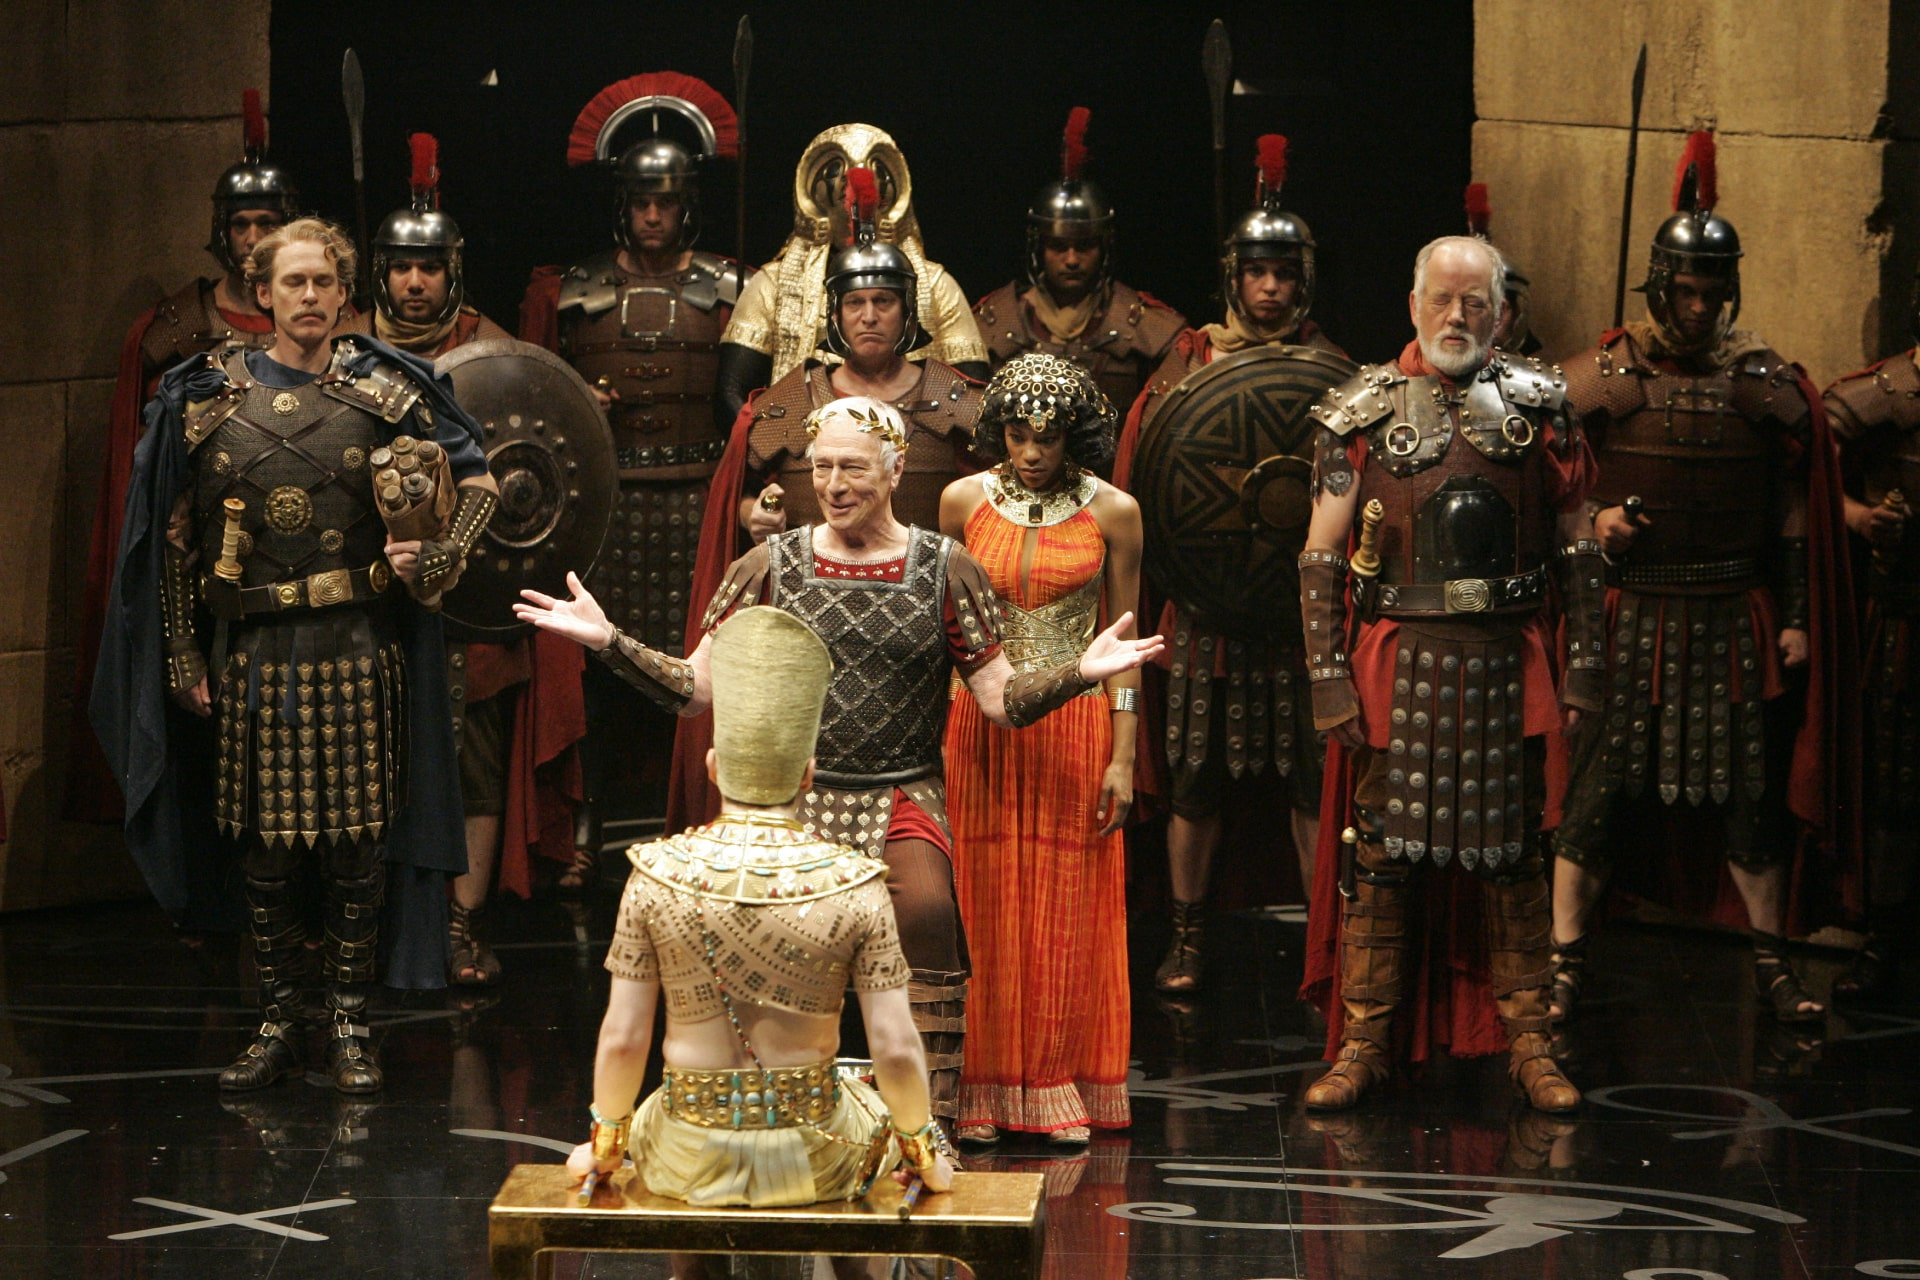 Roman leader lectures Egyptian boy, flanked by Egyptian queen in orange and company of Roman soldiers.